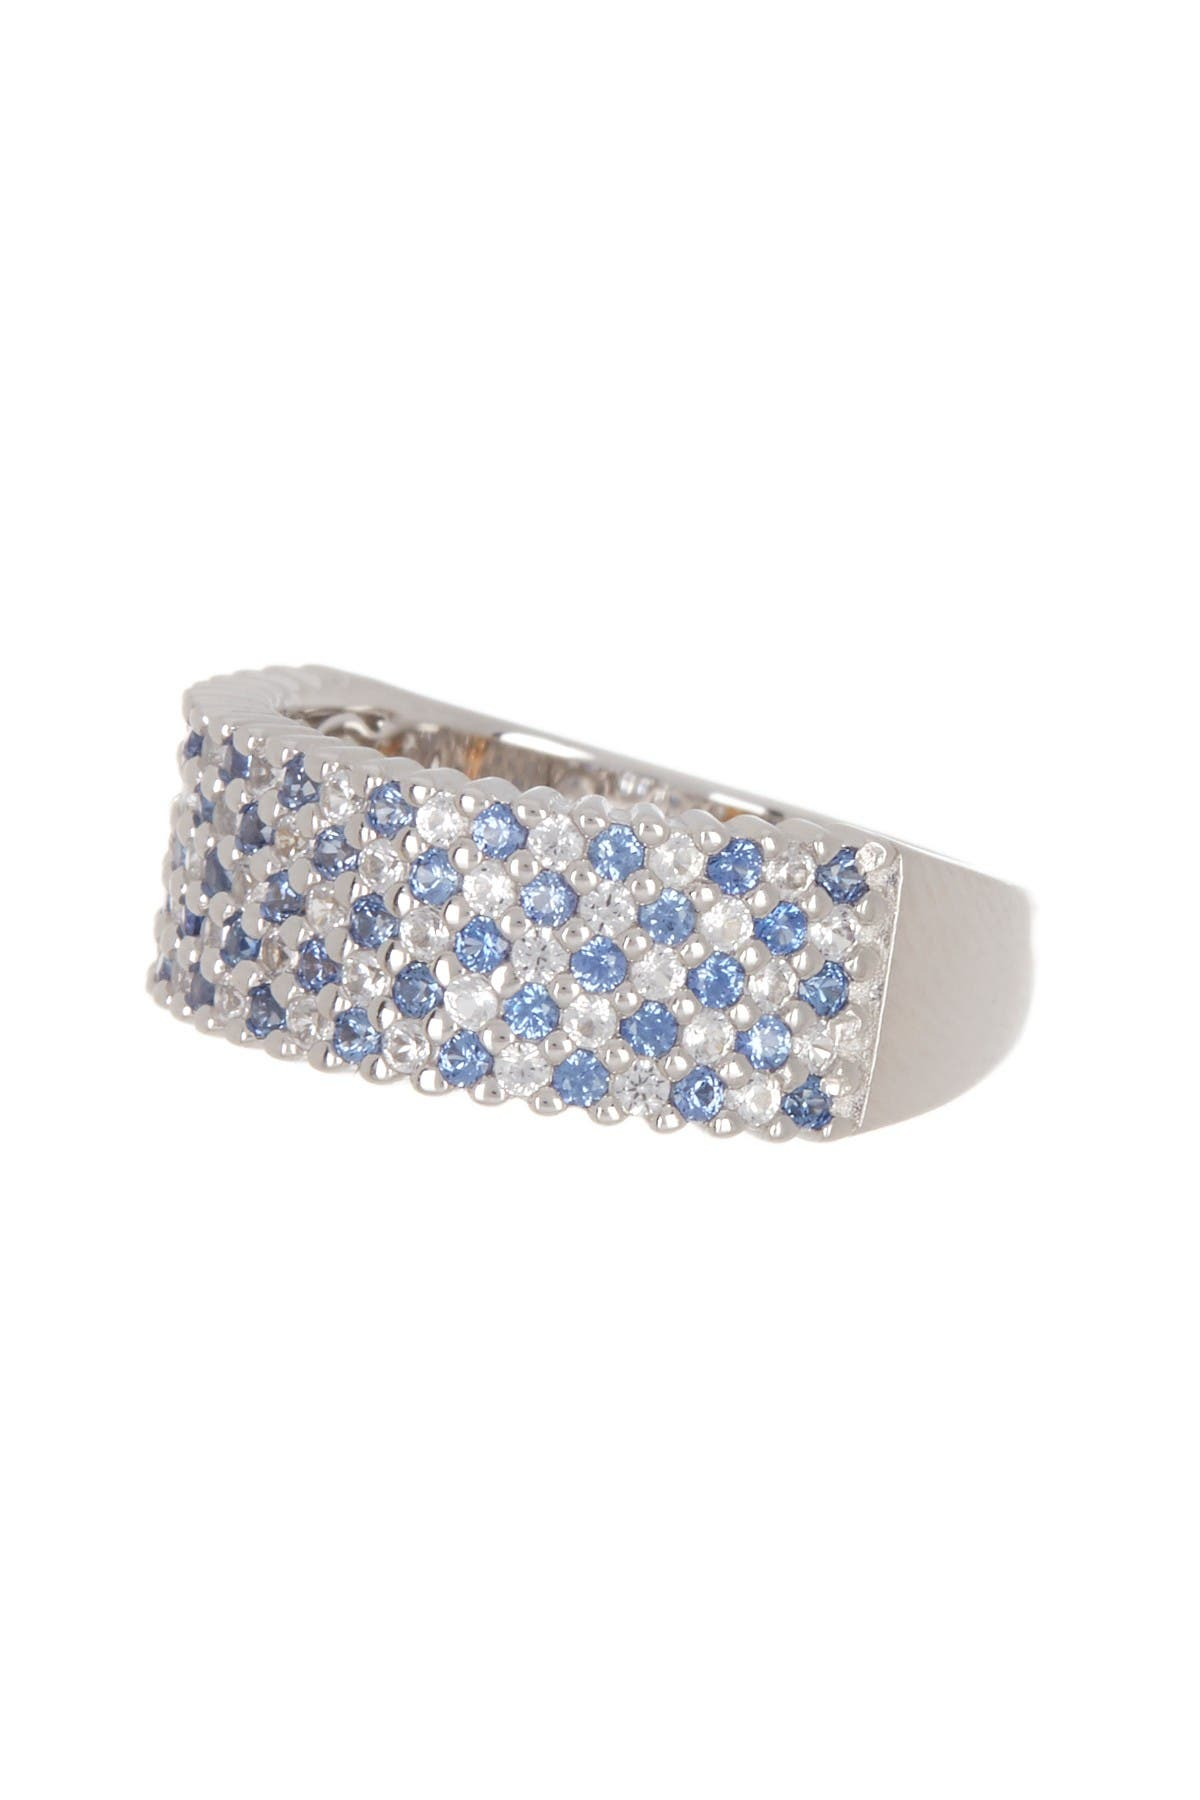 Image of Suzy Levian Sterling Silver Pave Sapphire & Diamond Accent Eternity Band Ring